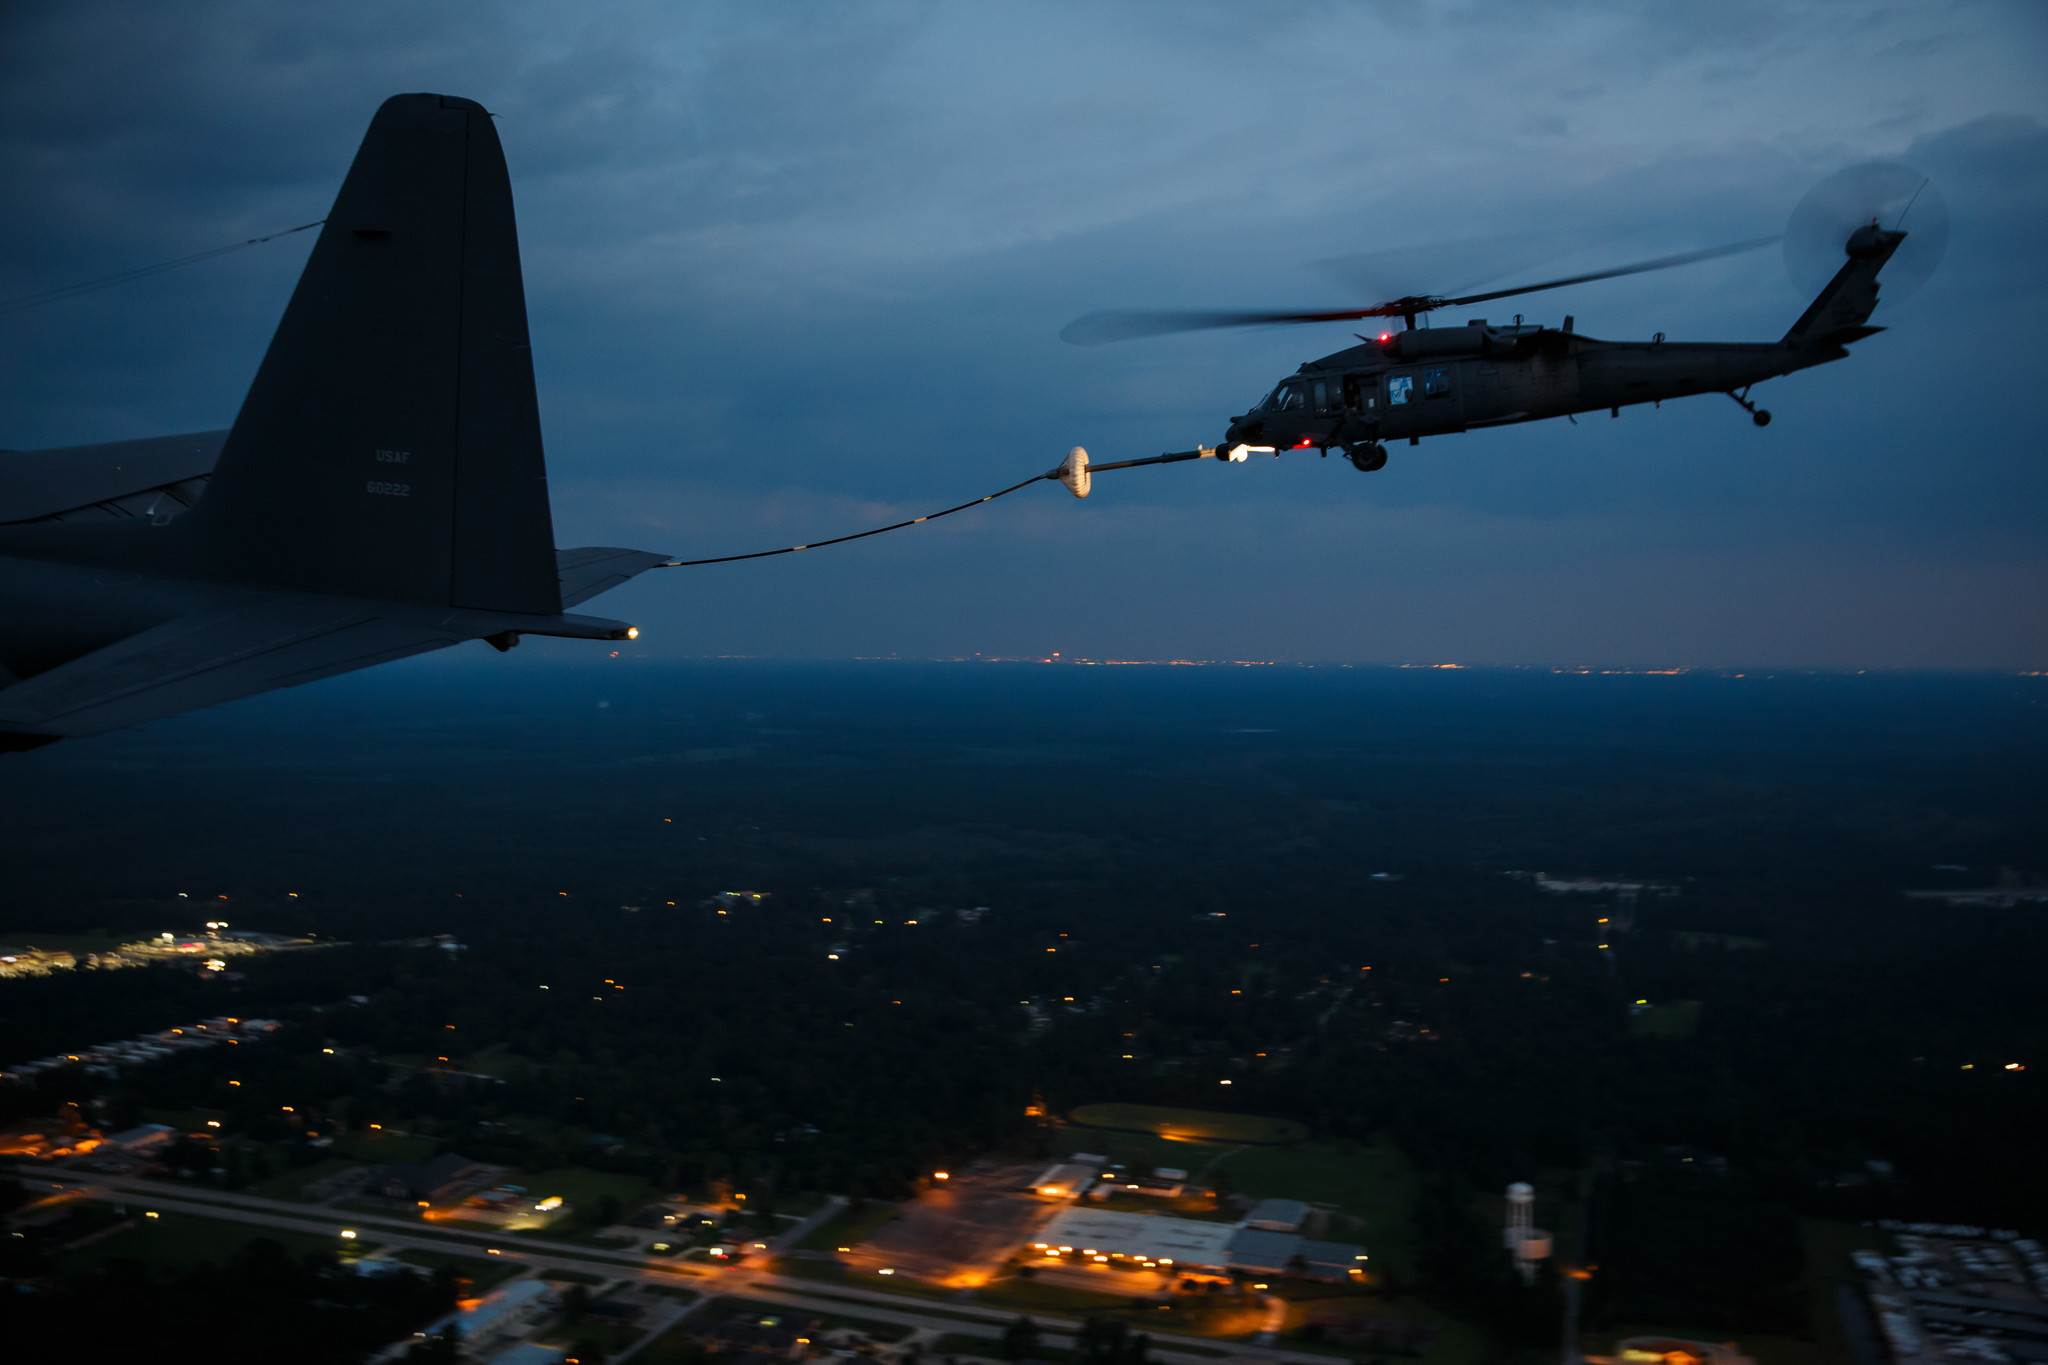 A military search and rescue helicopter refuels mid-flight before resuming nighttime missions over flood areas.